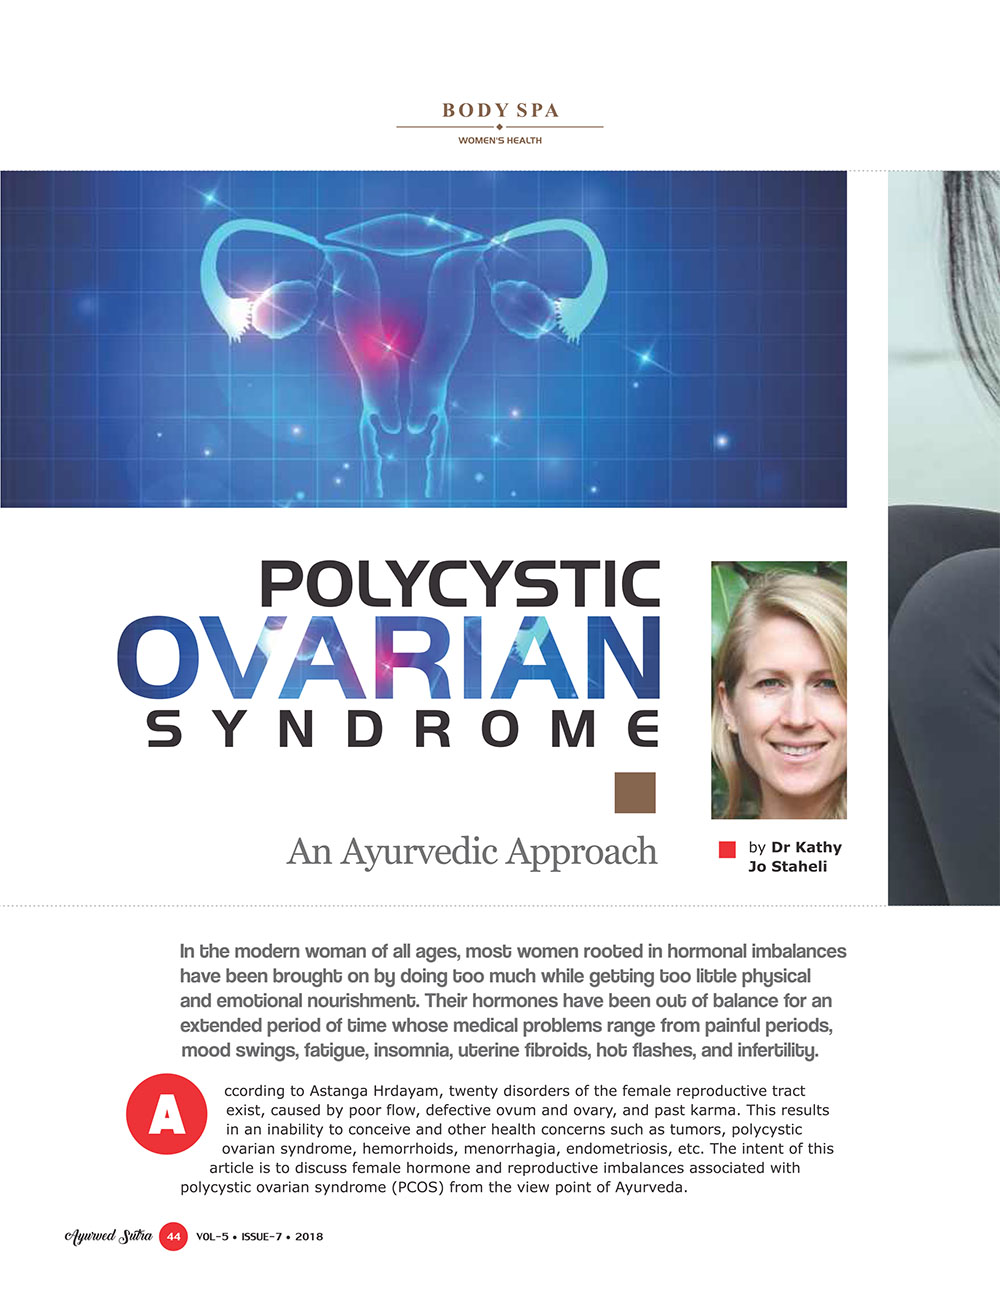 Ayurvedsutra Vol 05 issue 07 46 - Polycystic Ovarian Syndrome: An Ayurvedic Approach